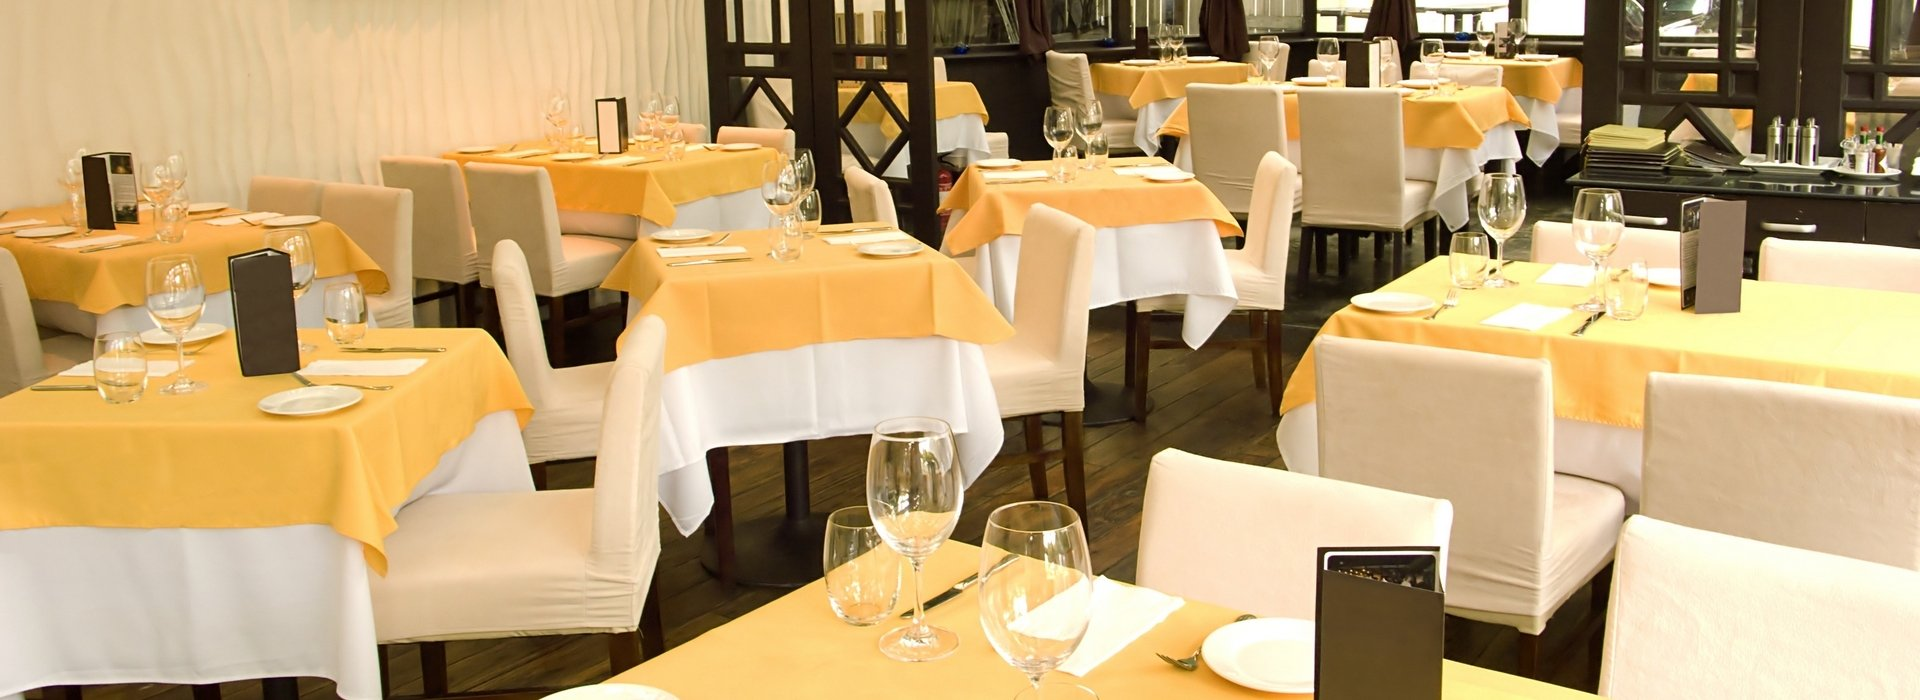 Restaurant in Pest - Restaurants in Budapest Zentrum